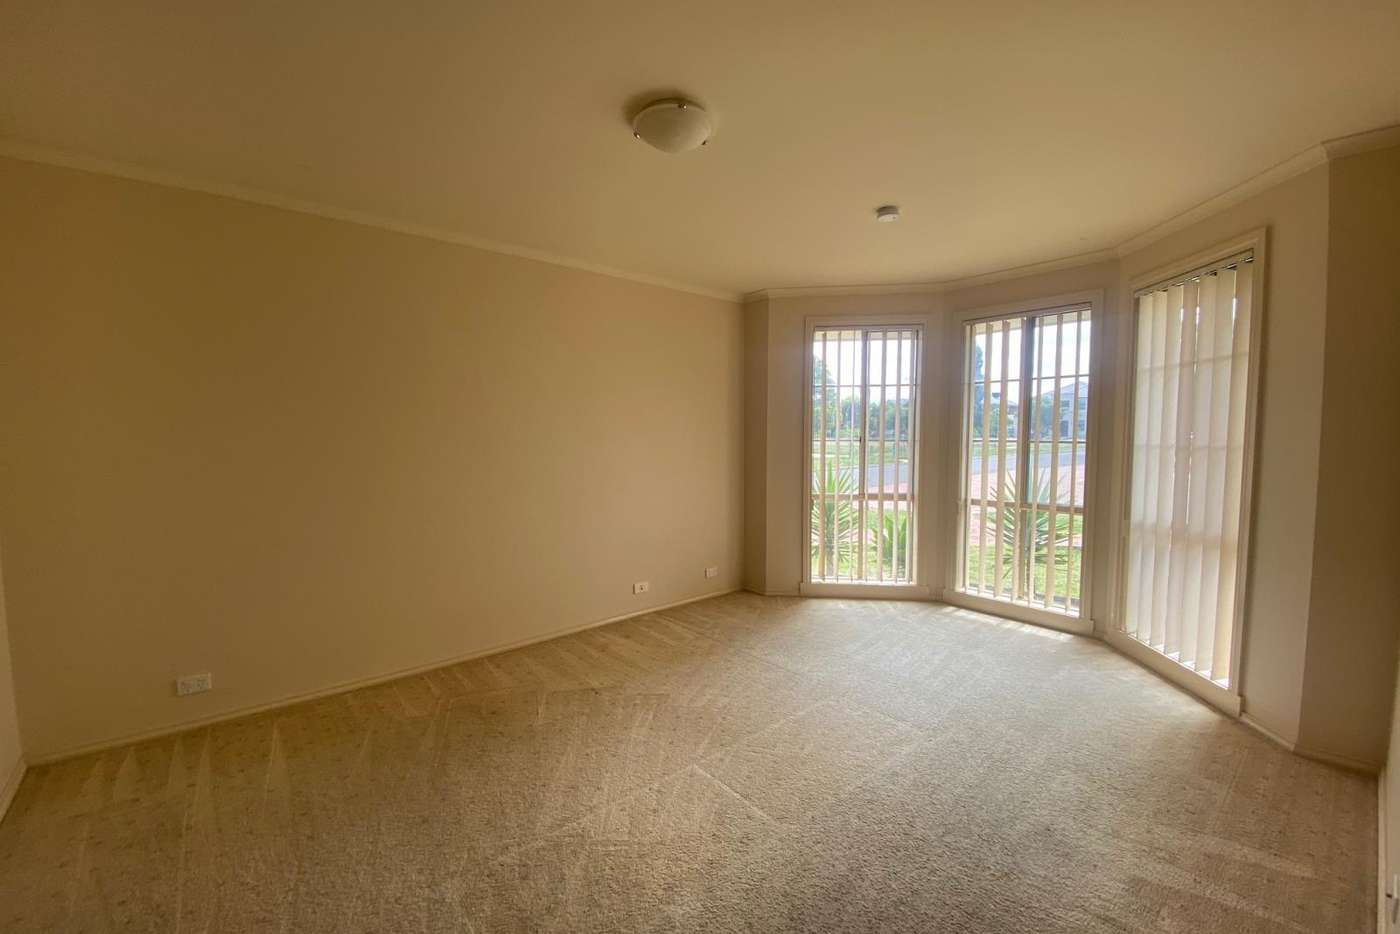 Sixth view of Homely house listing, 17 Newminster Way, Point Cook VIC 3030